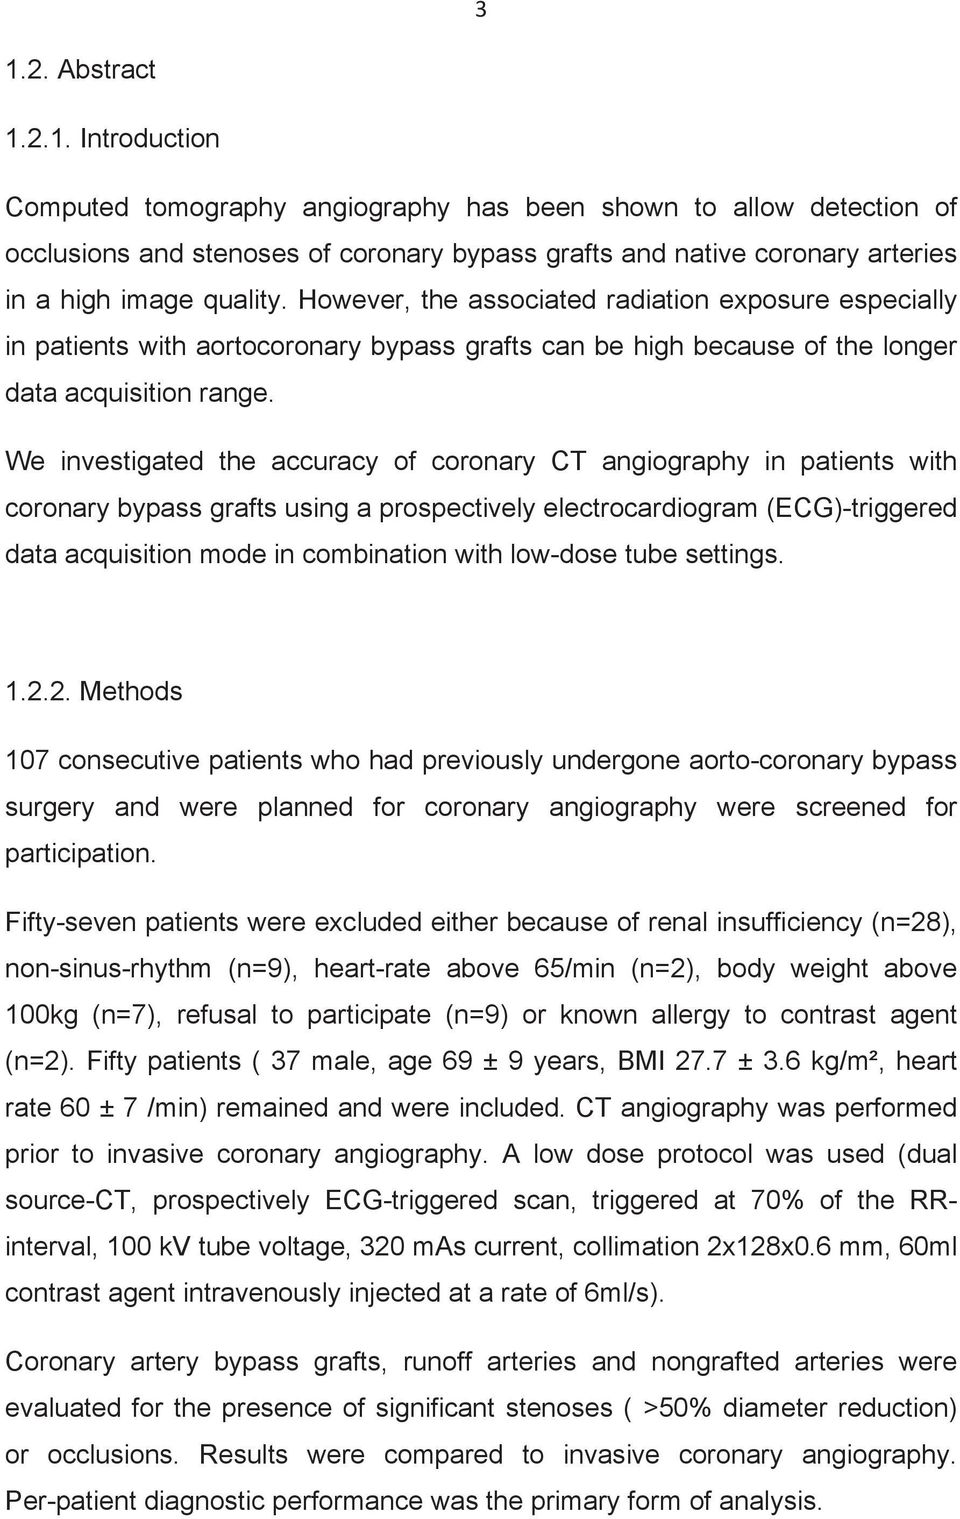 We investigated the accuracy of coronary CT angiography in patients with coronary bypass grafts using a prospectively electrocardiogram (ECG)-triggered data acquisition mode in combination with